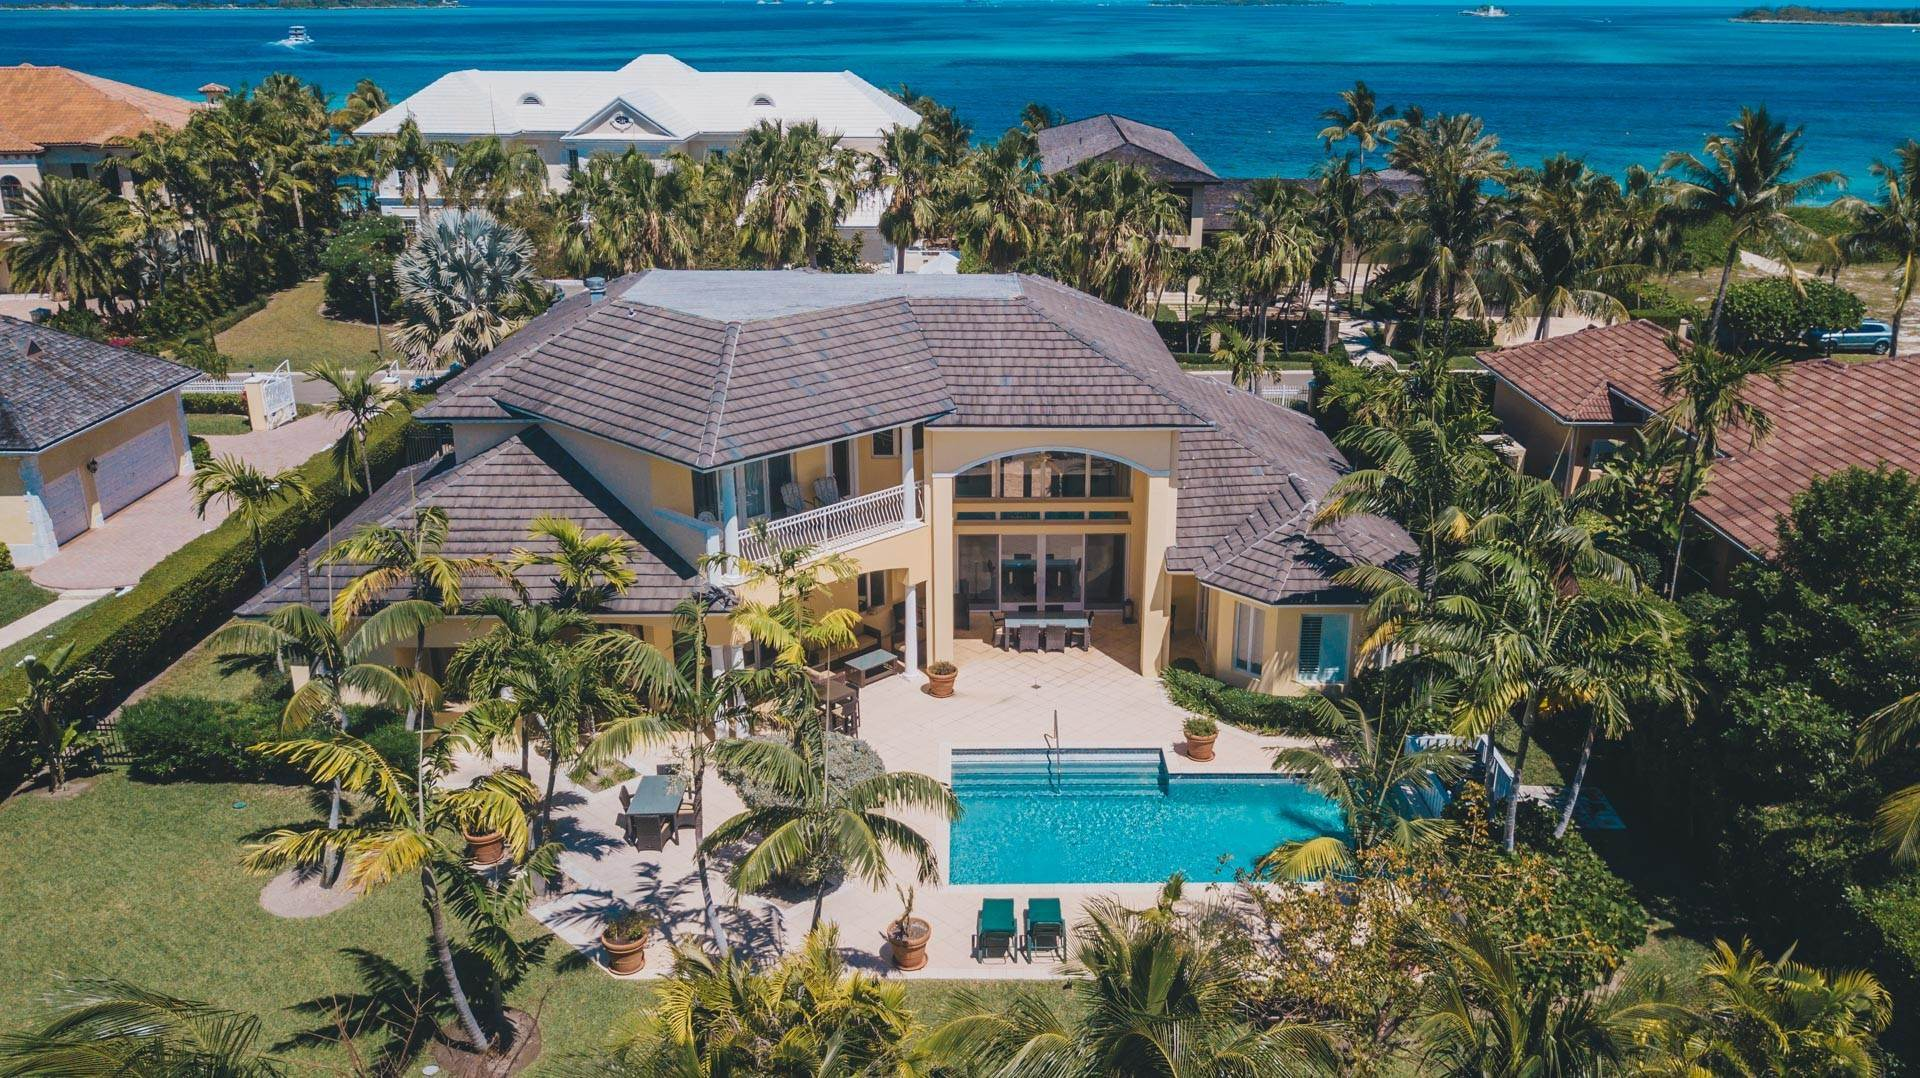 Single Family Homes for Rent at Ocean Club Golf Course Rental - MLS 37249 Ocean Club Estates, Nassau And Paradise Island, Bahamas